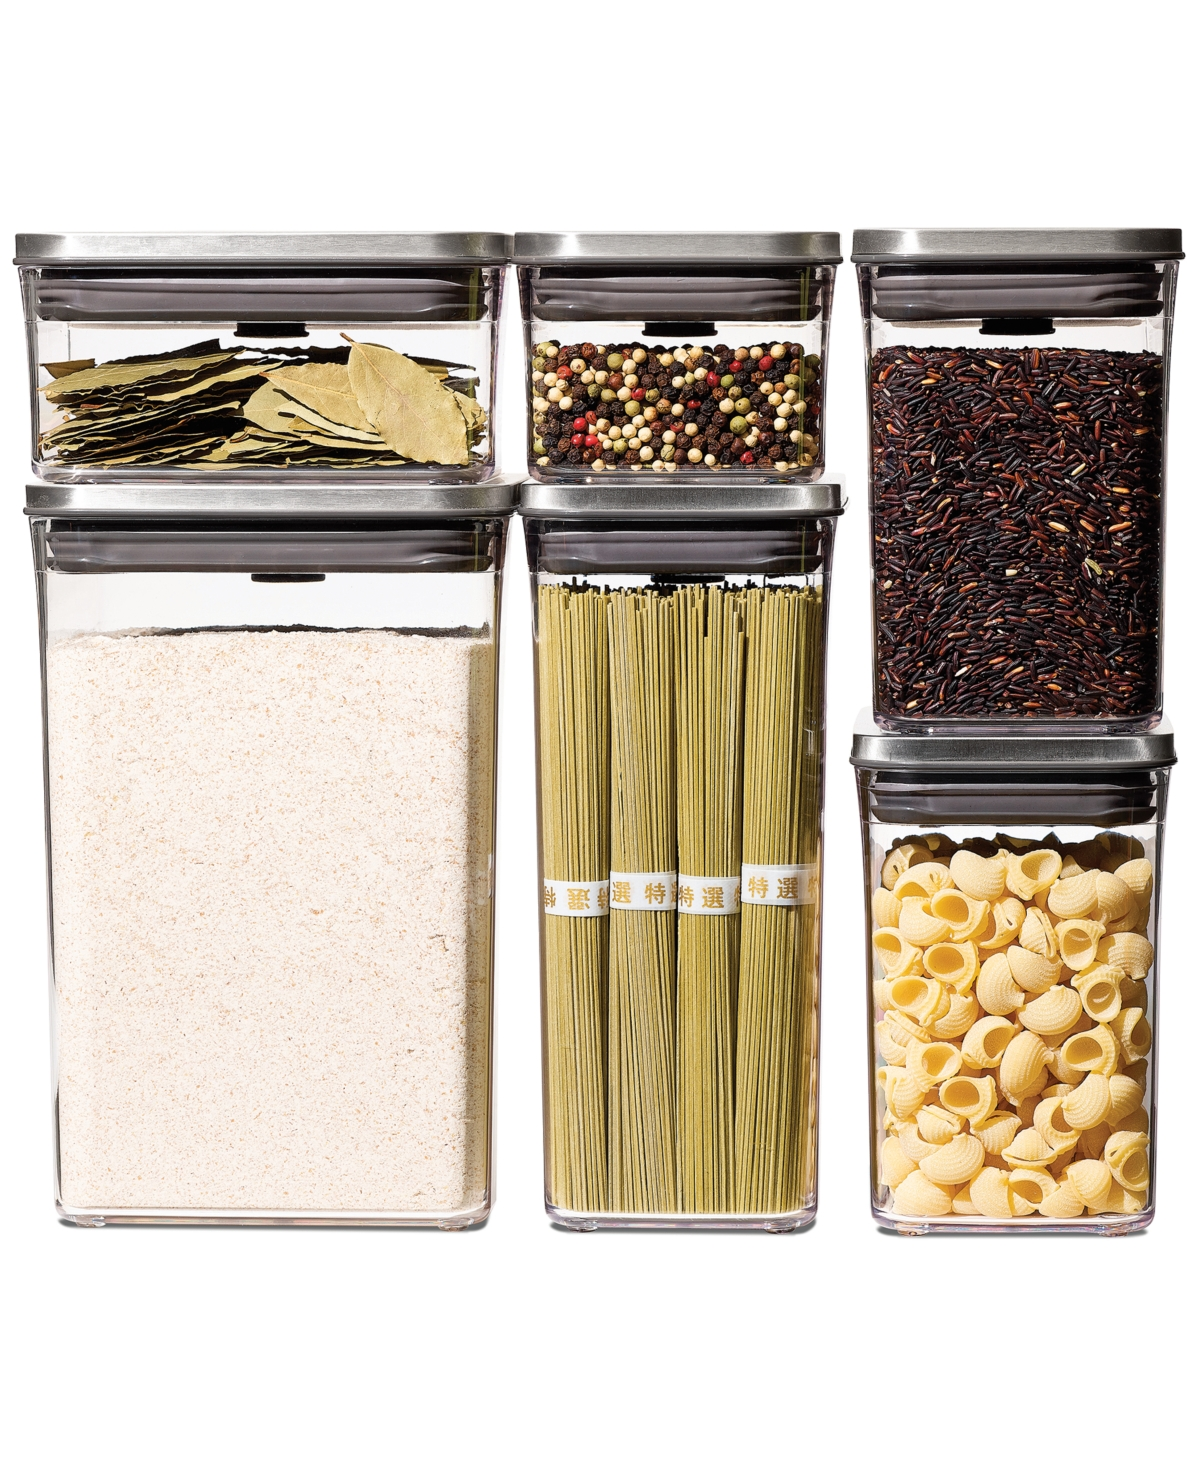 Oxo Steel Pop Food Storage Containers, Set of 6